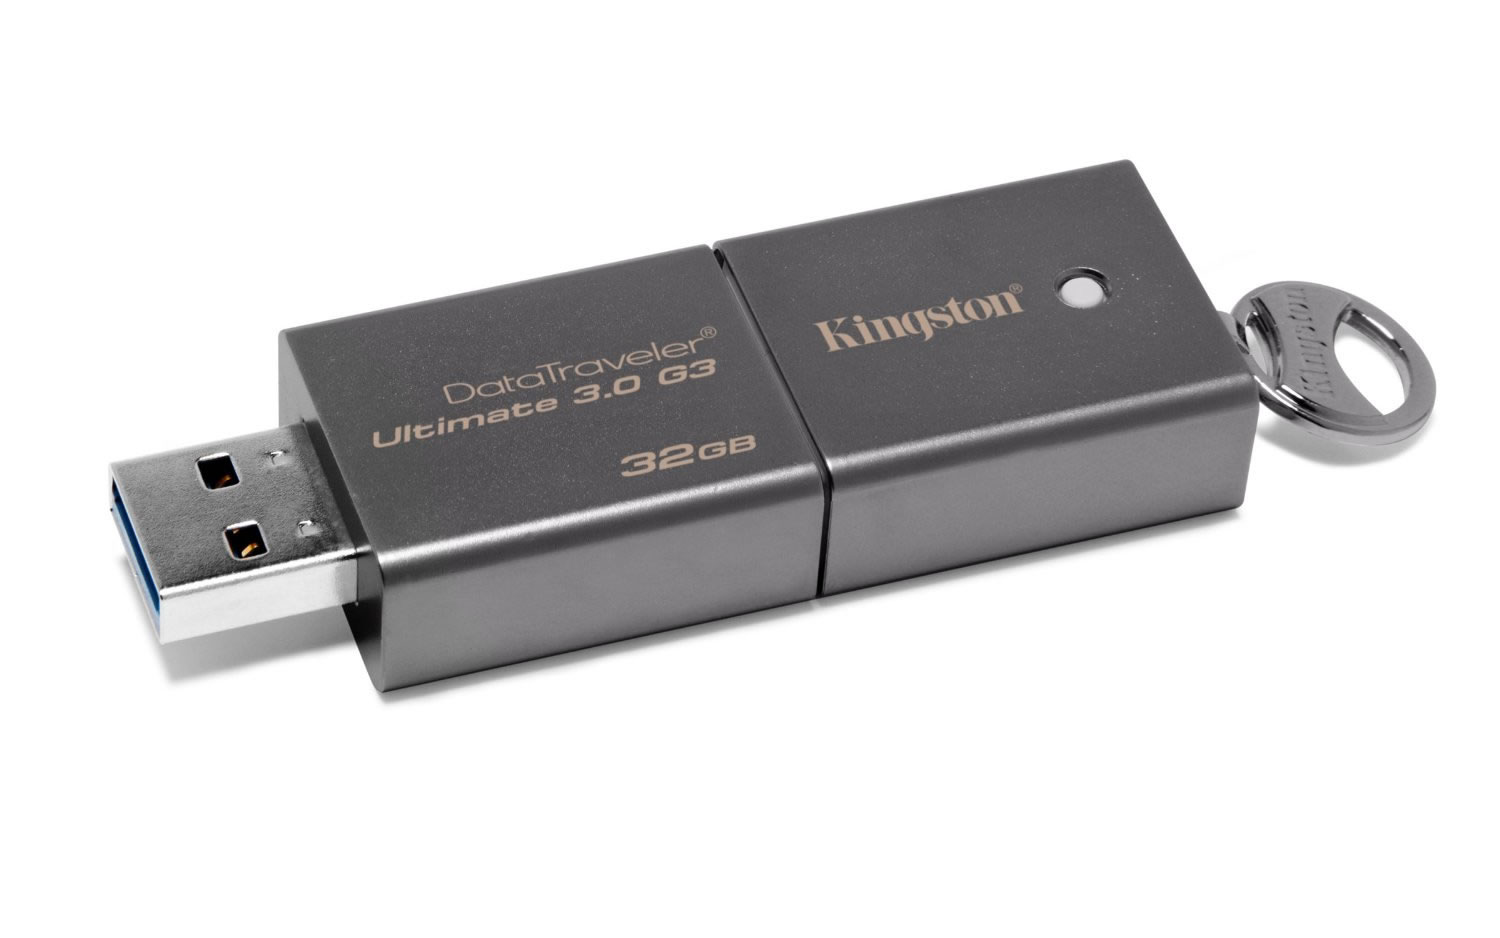 Kingston 32Gb DTU30G3 usb3.0